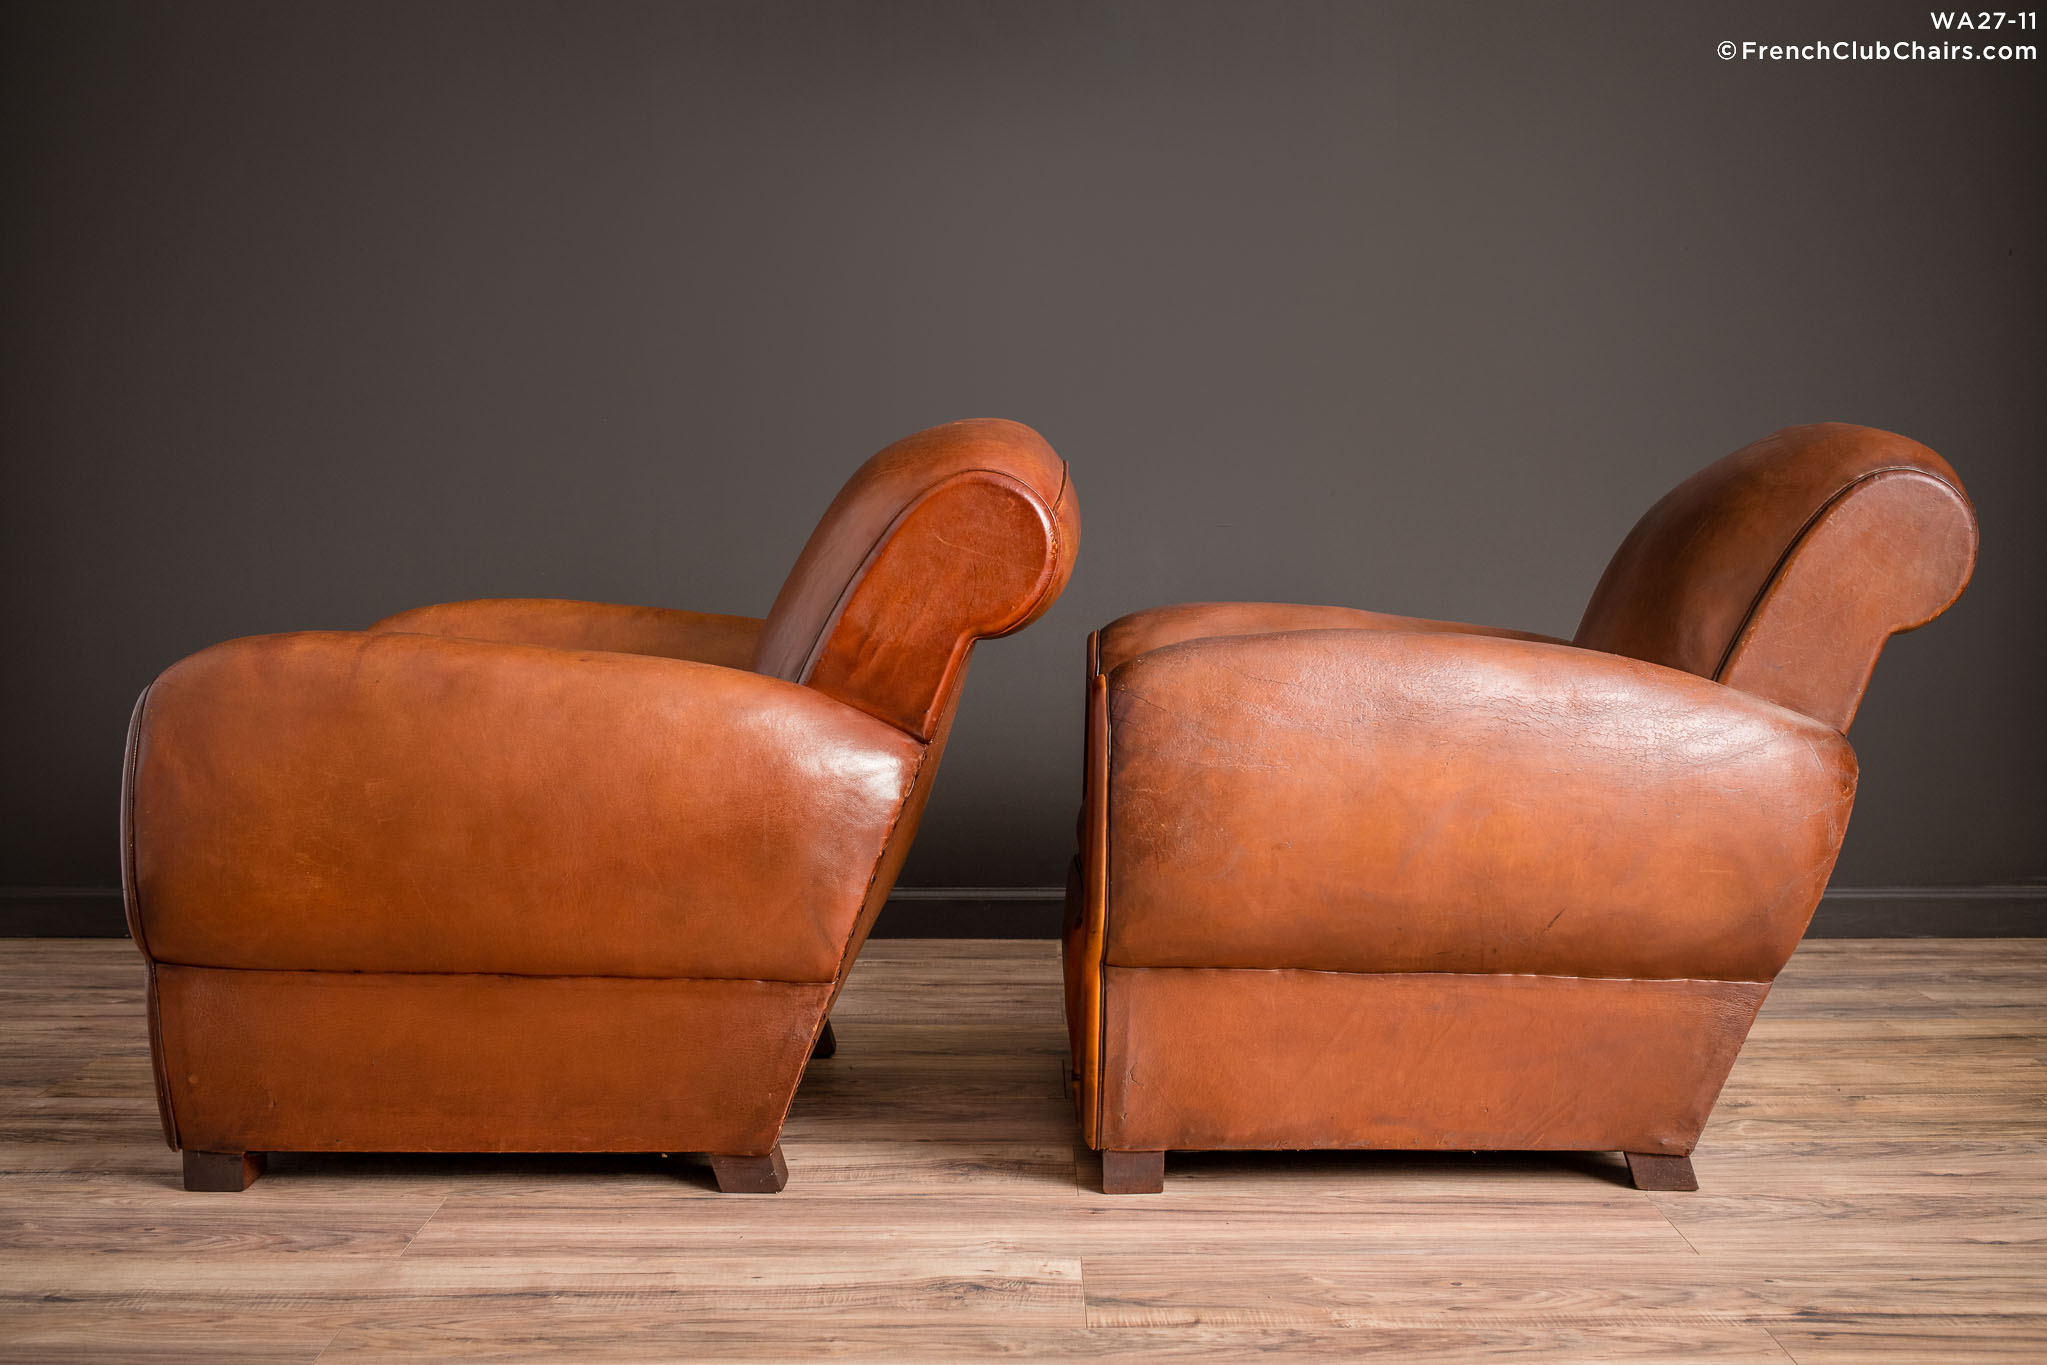 WA_27-11_Chatou_Rollback_Pair_R_4LT-v01-williams-antiks-leather-french-club-chair-wa_fcccom